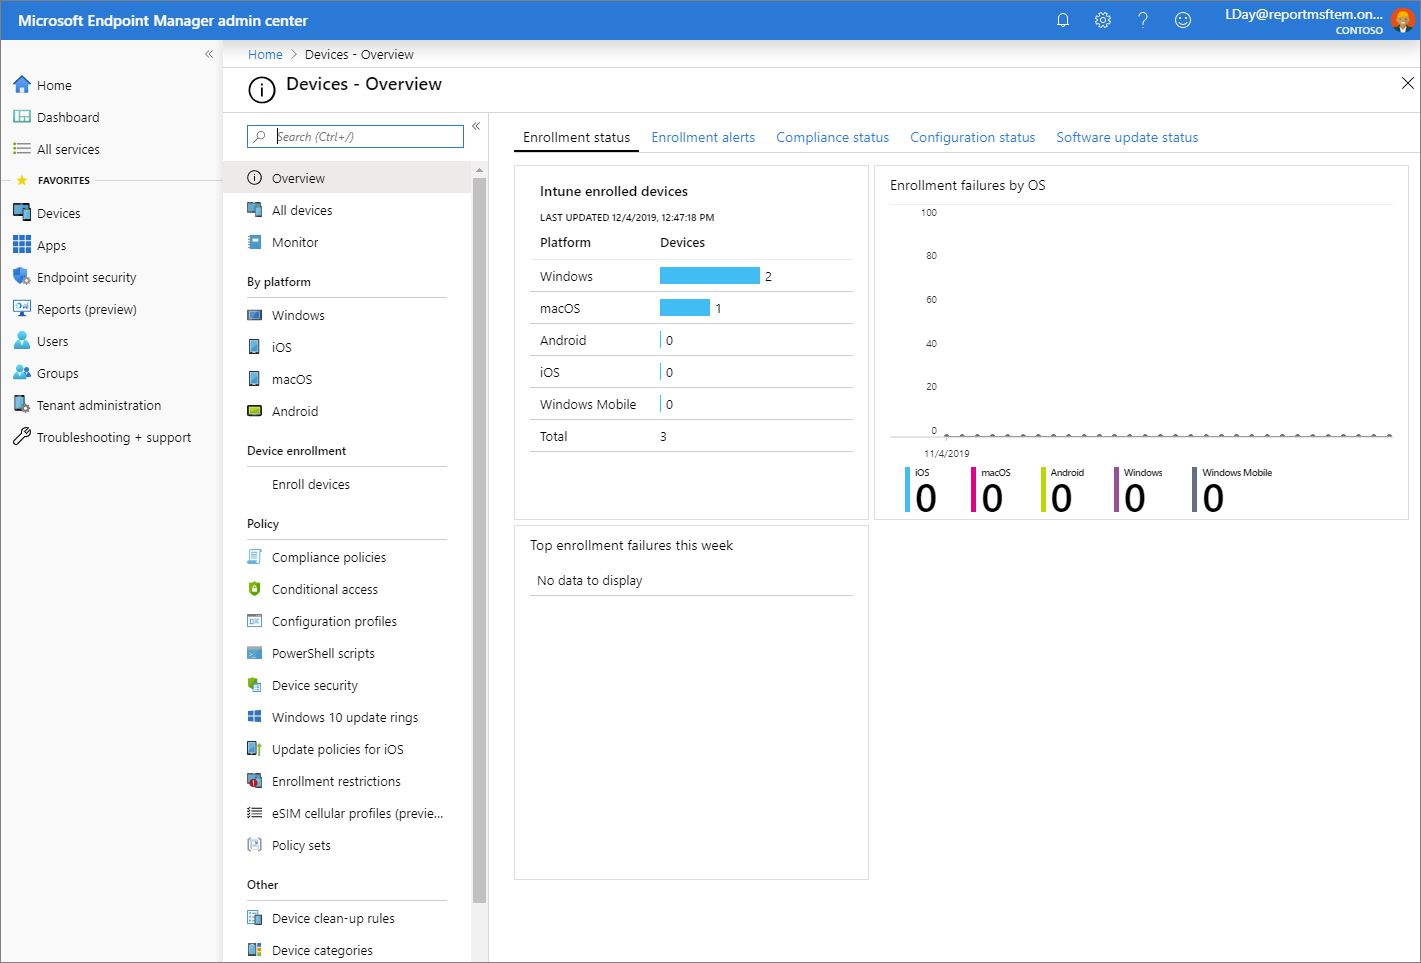 Screenshot of the Microsoft Endpoint Manager admin center - Devices